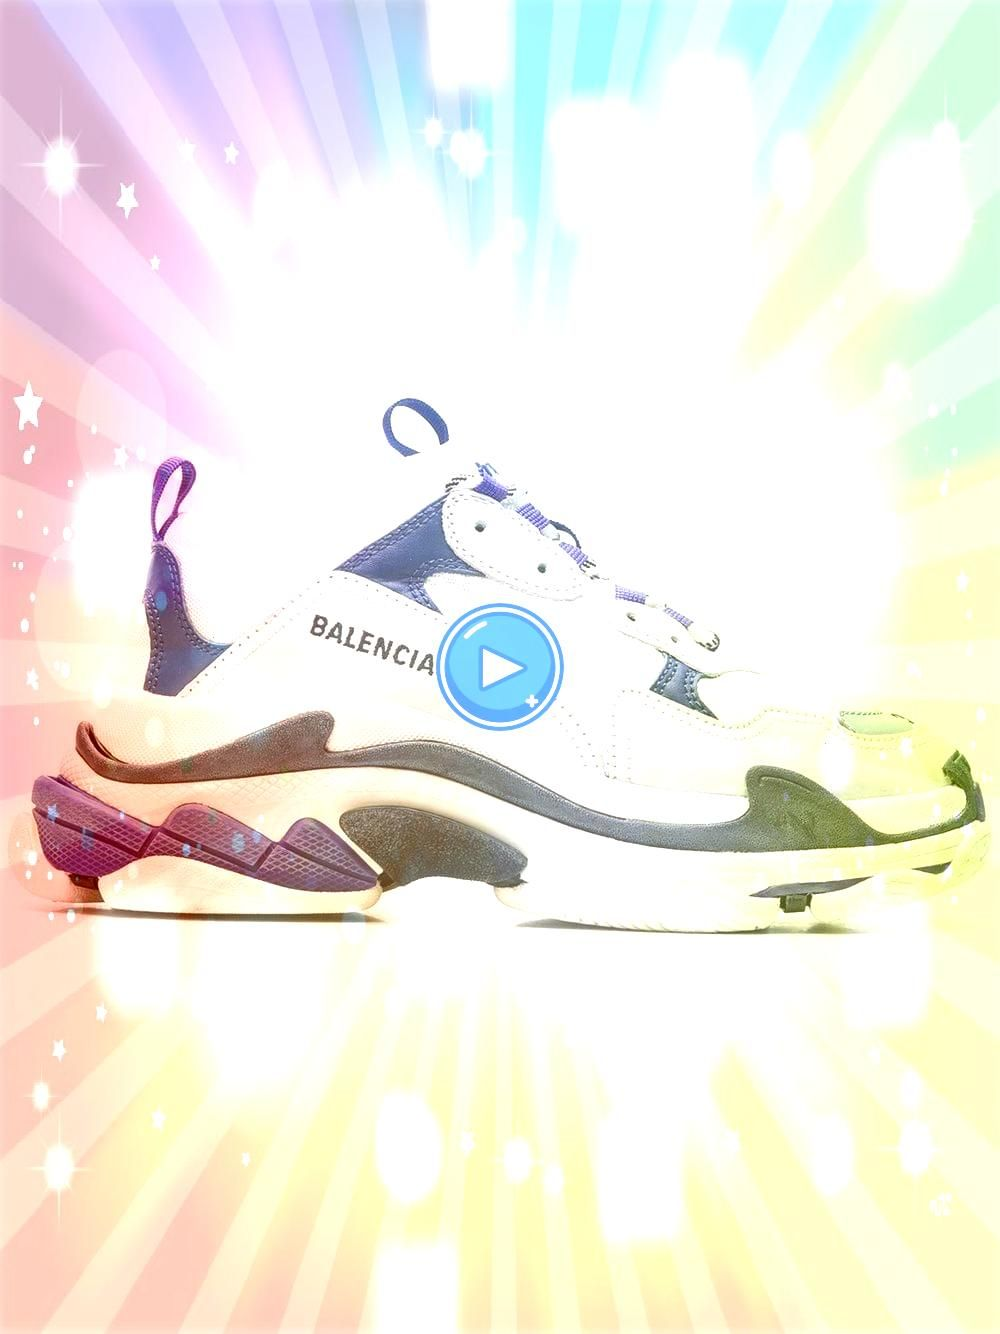 Tenis Triple S Balenciaga Tenis Triple S  Balenciaga Sneakers Follow virtualcloset for more  Womens Sneakers  EAF Sneakers today at a special price Only  Balenciaga  Trip...